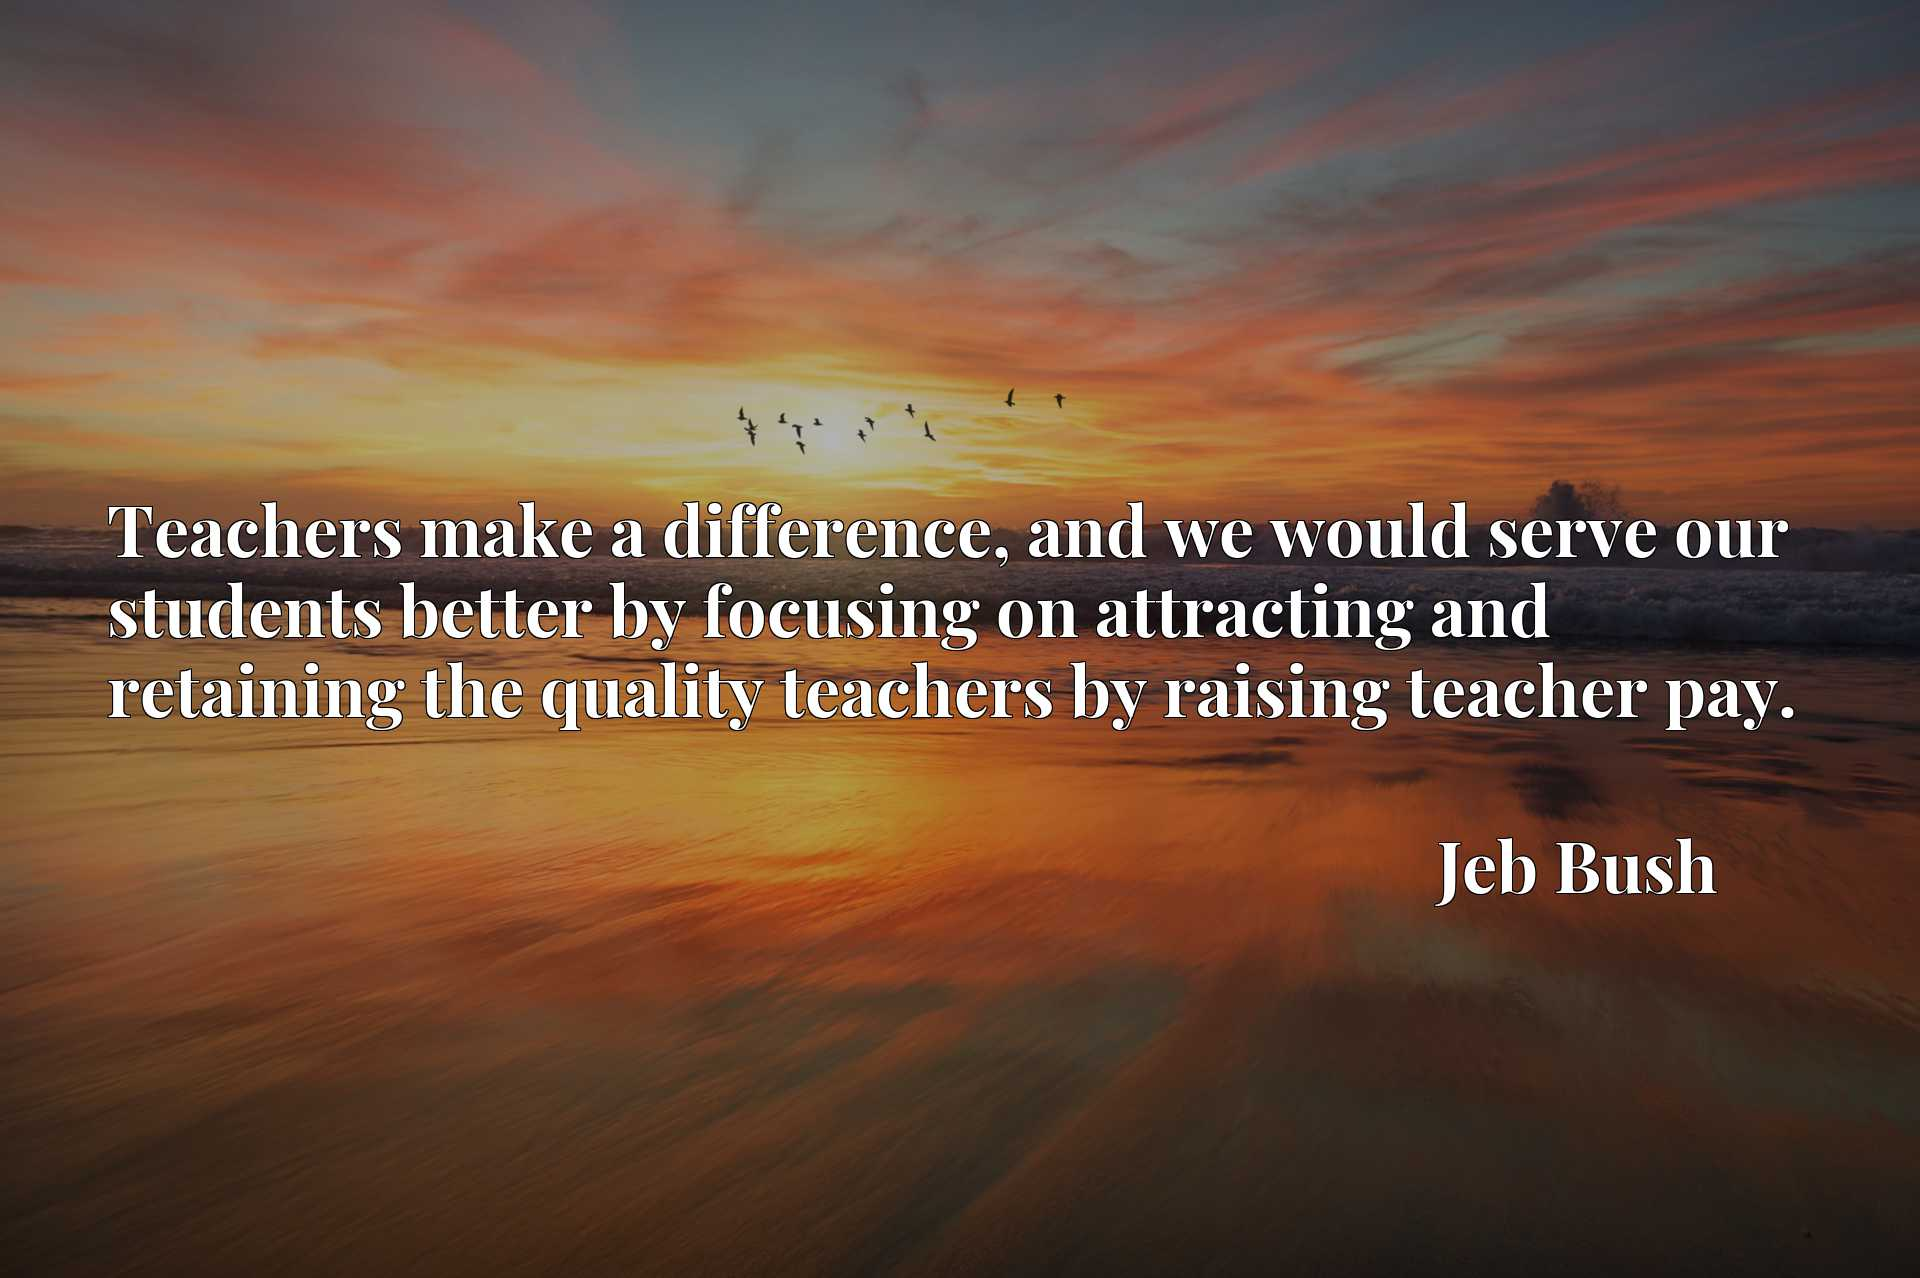 Quote Picture :Teachers make a difference, and we would serve our students better by focusing on attracting and retaining the quality teachers by raising teacher pay.